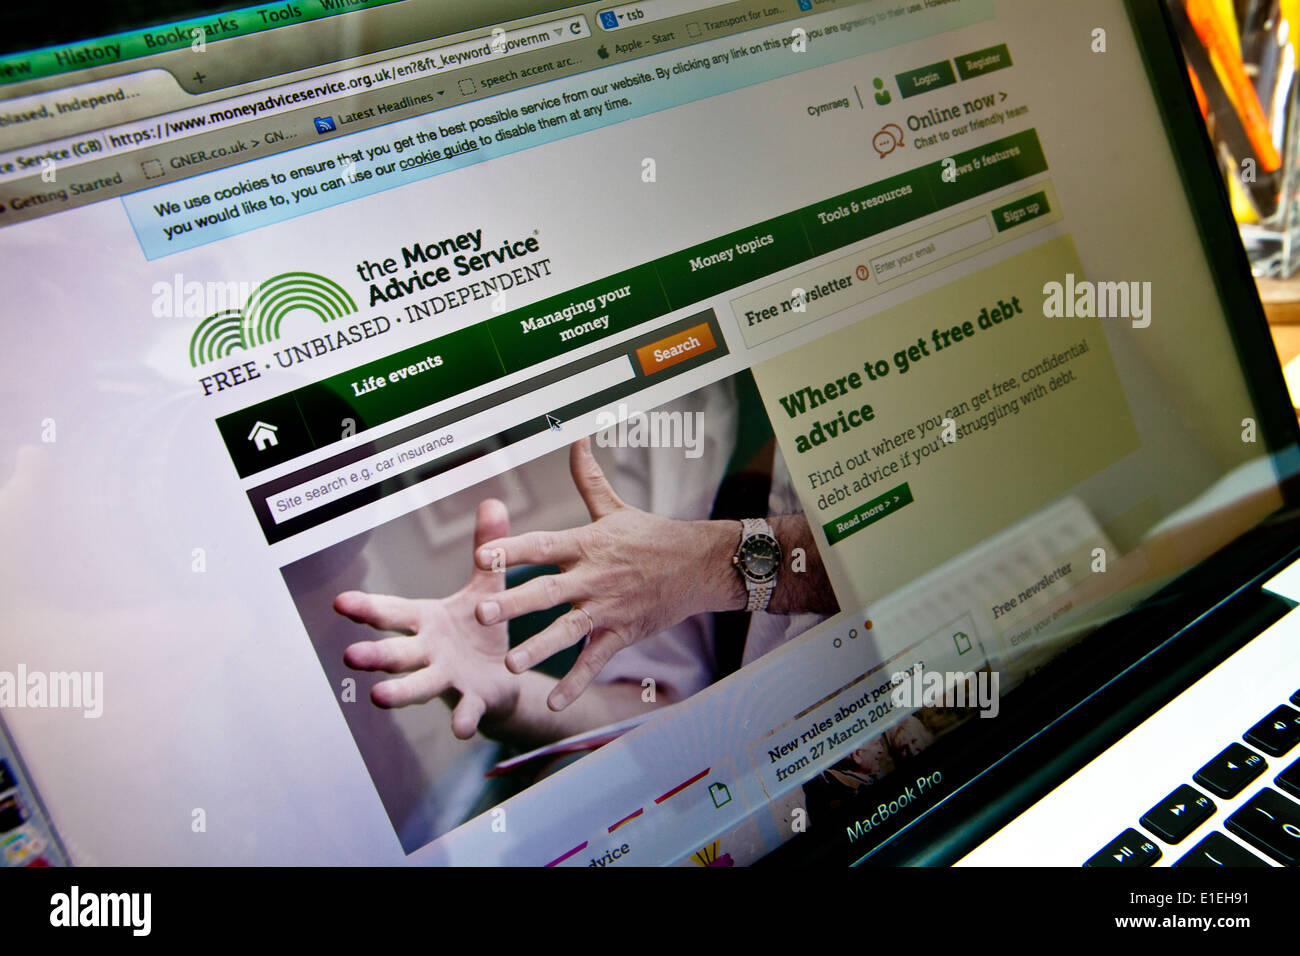 Computer laptop screen shown website for The Money Advice Service - Stock Image